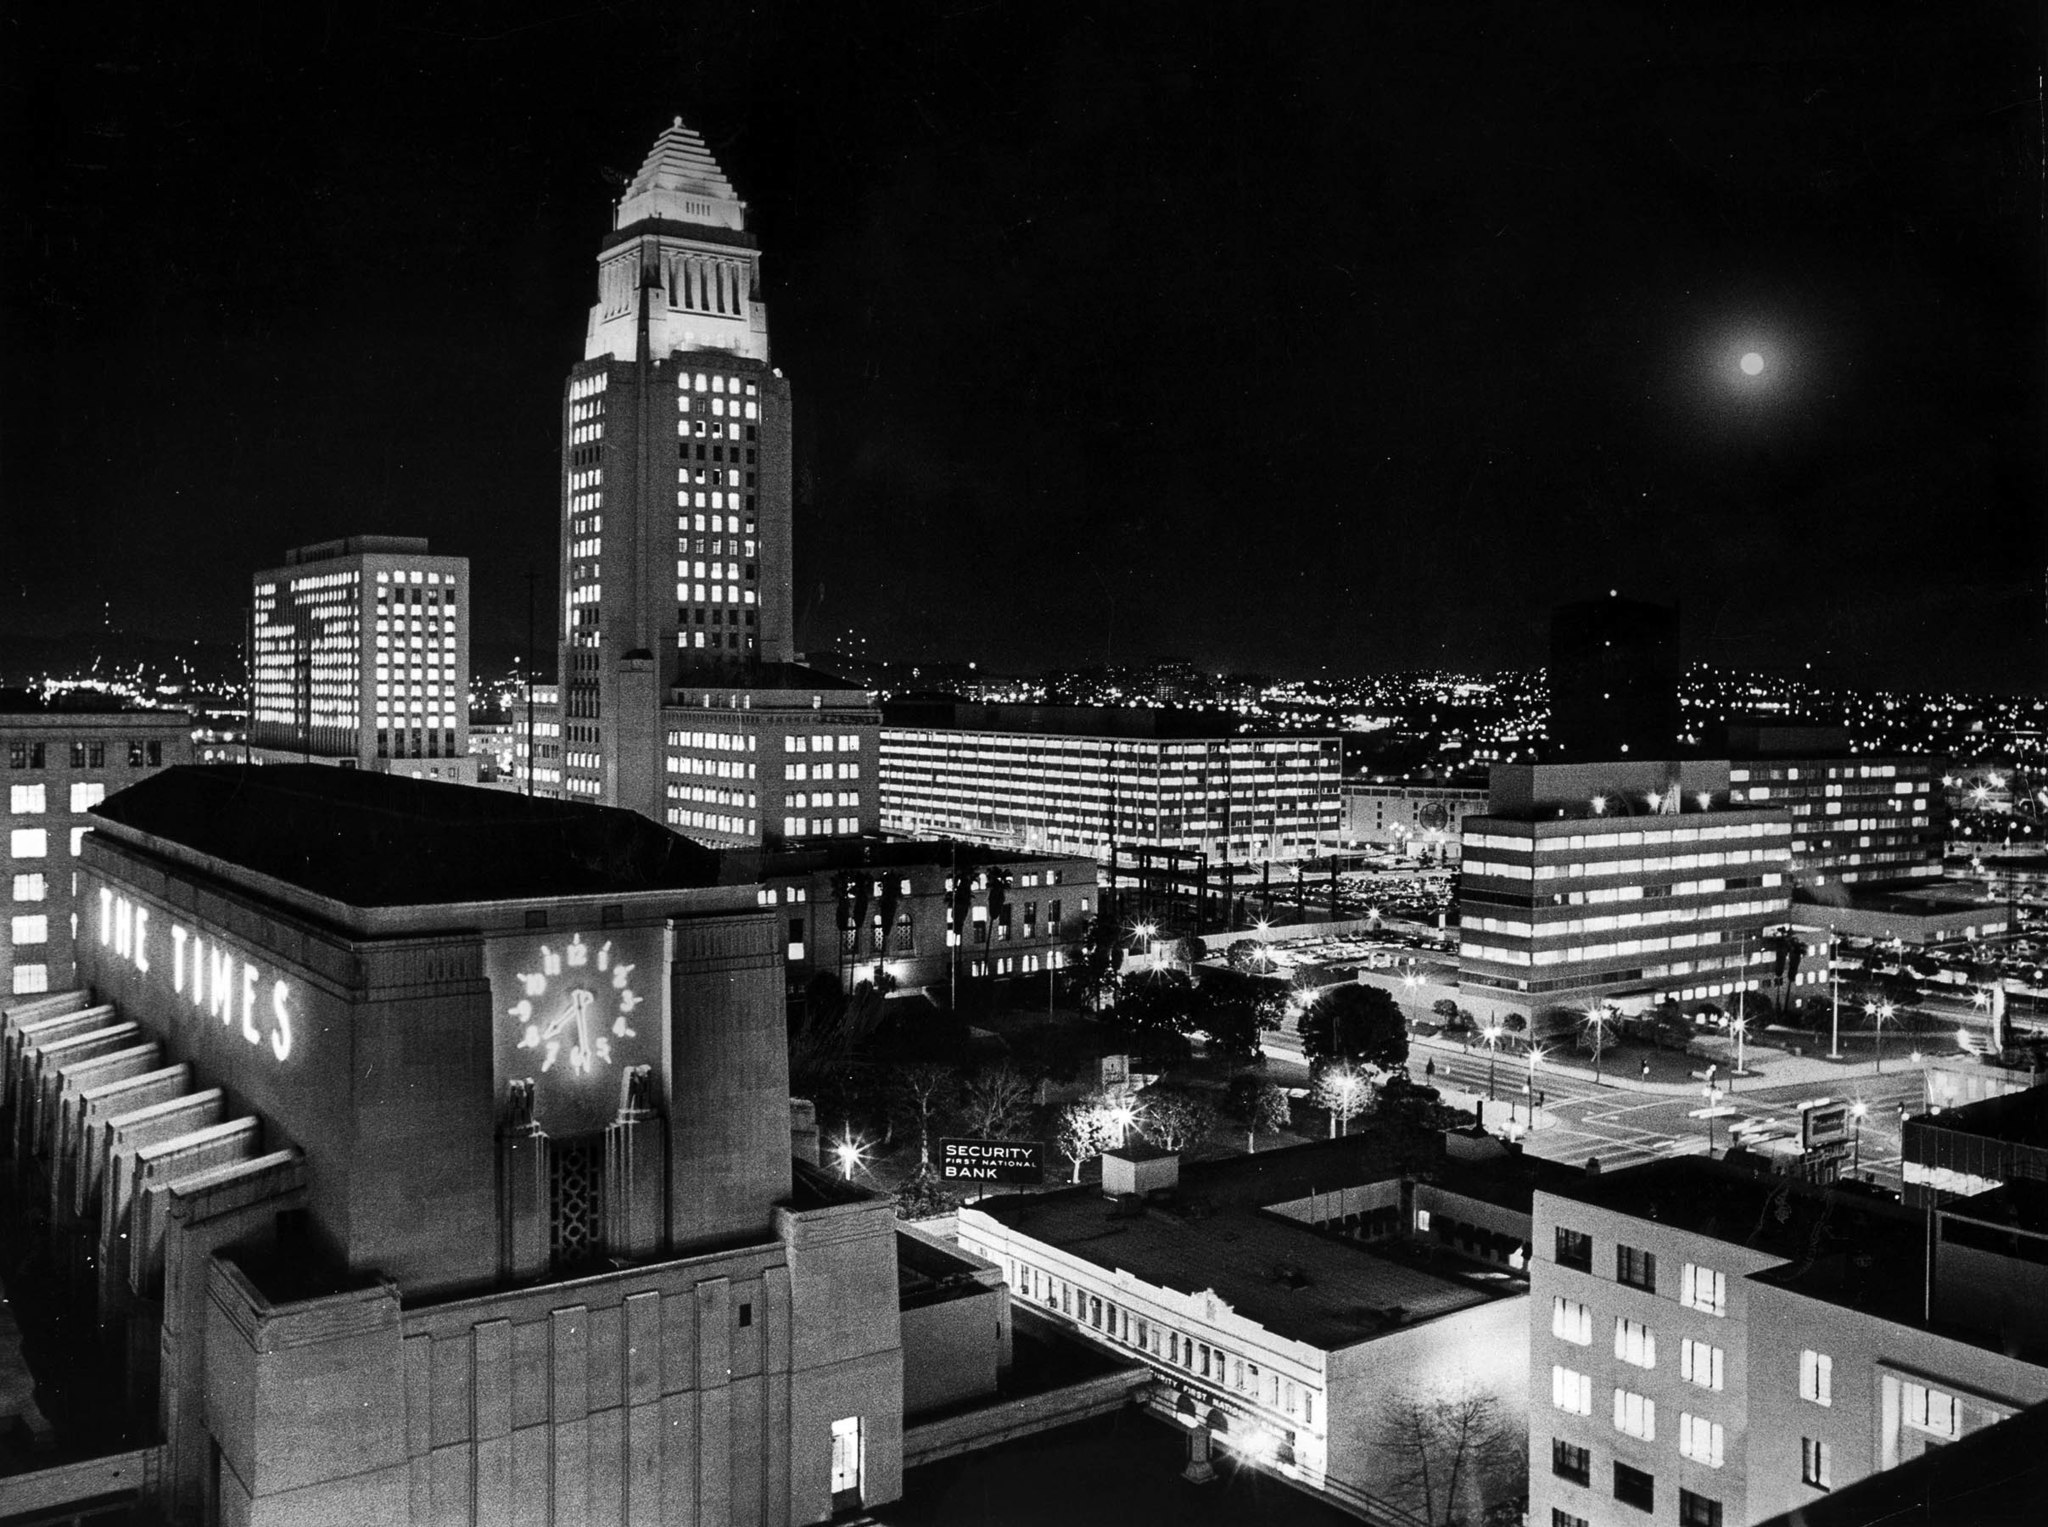 Feb. 4, 1969: Los Angeles City Hall and Los Angeles Times building at night. A full moon is on the r